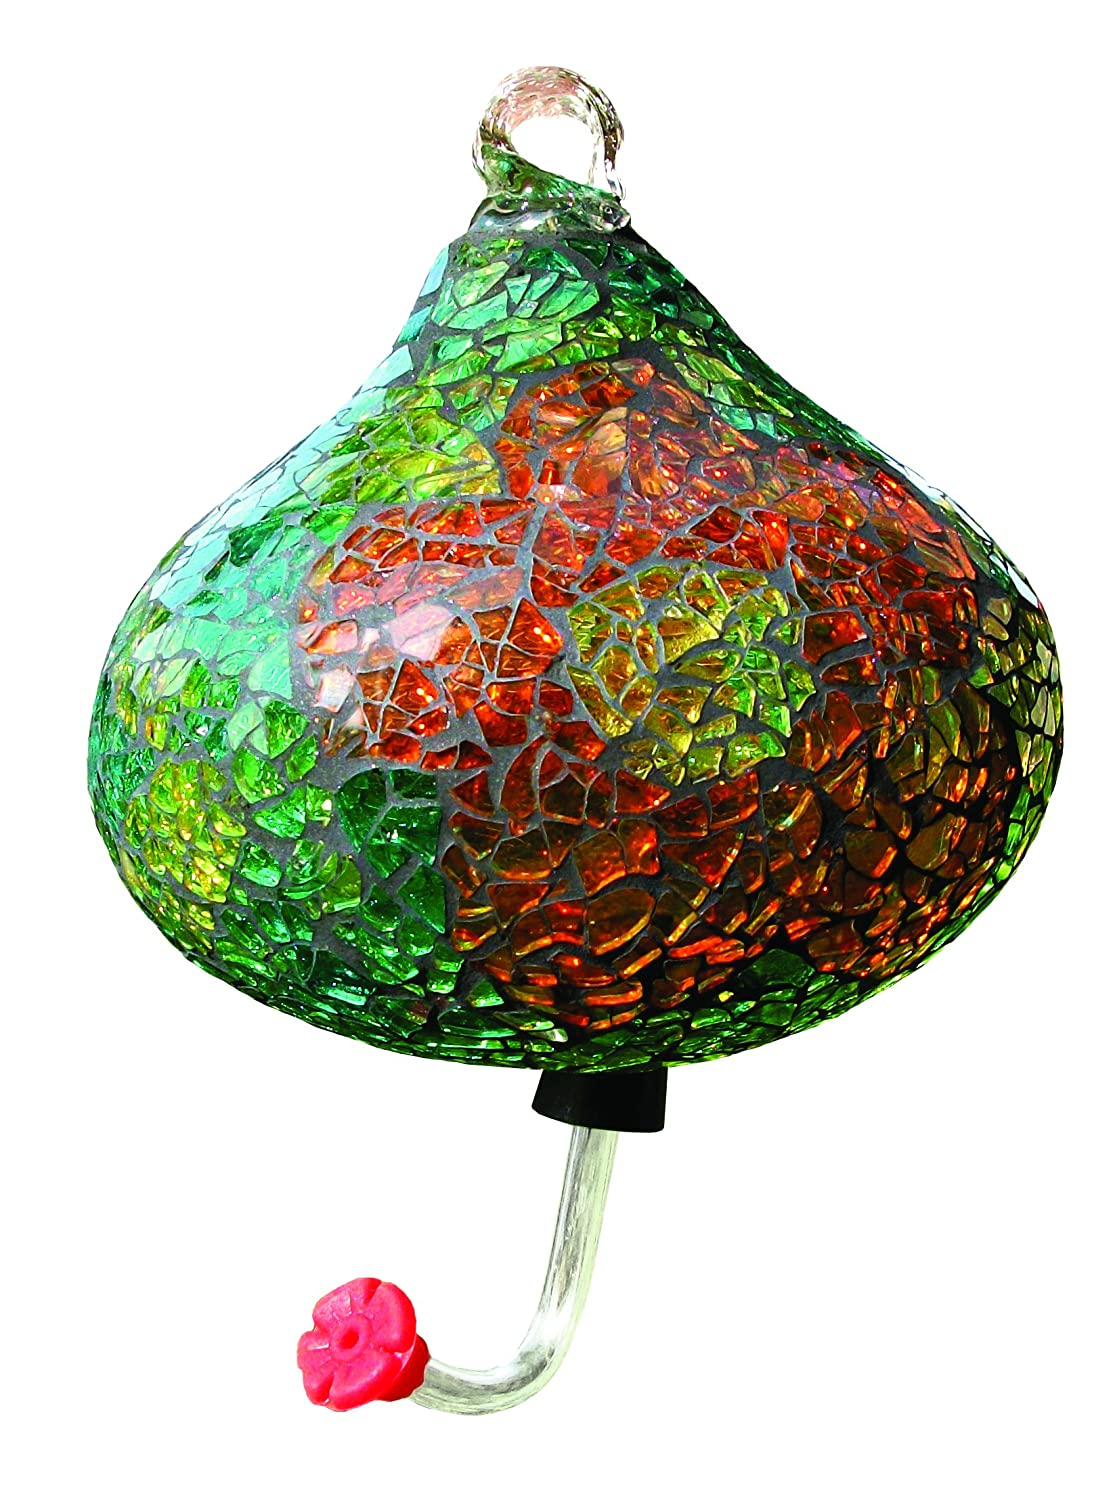 Green Teardrop Mosaic Glass Hummingbird Feeder